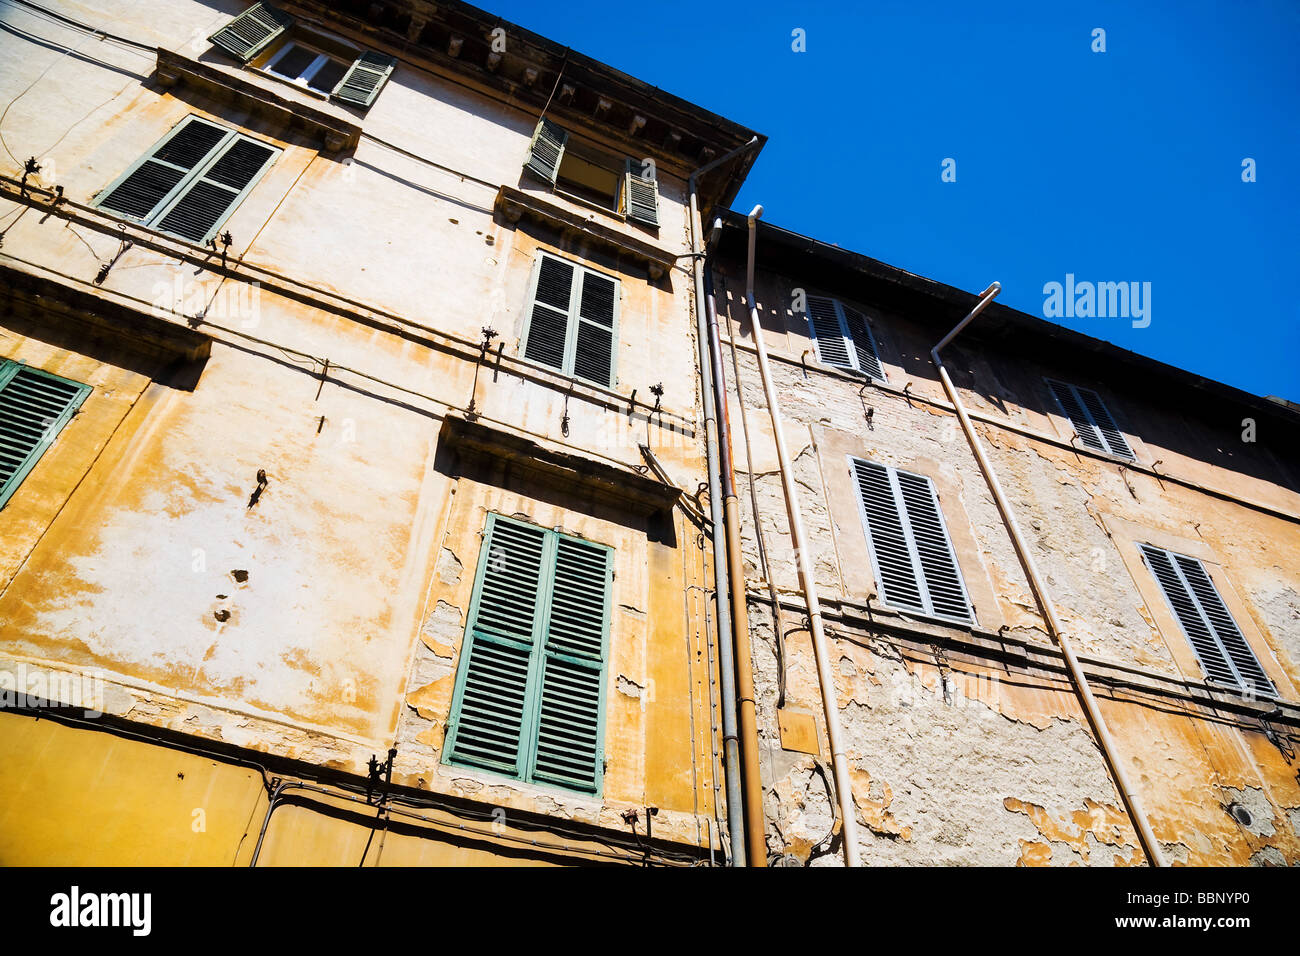 Traditional Italian old houses Wide angle view - Stock Image